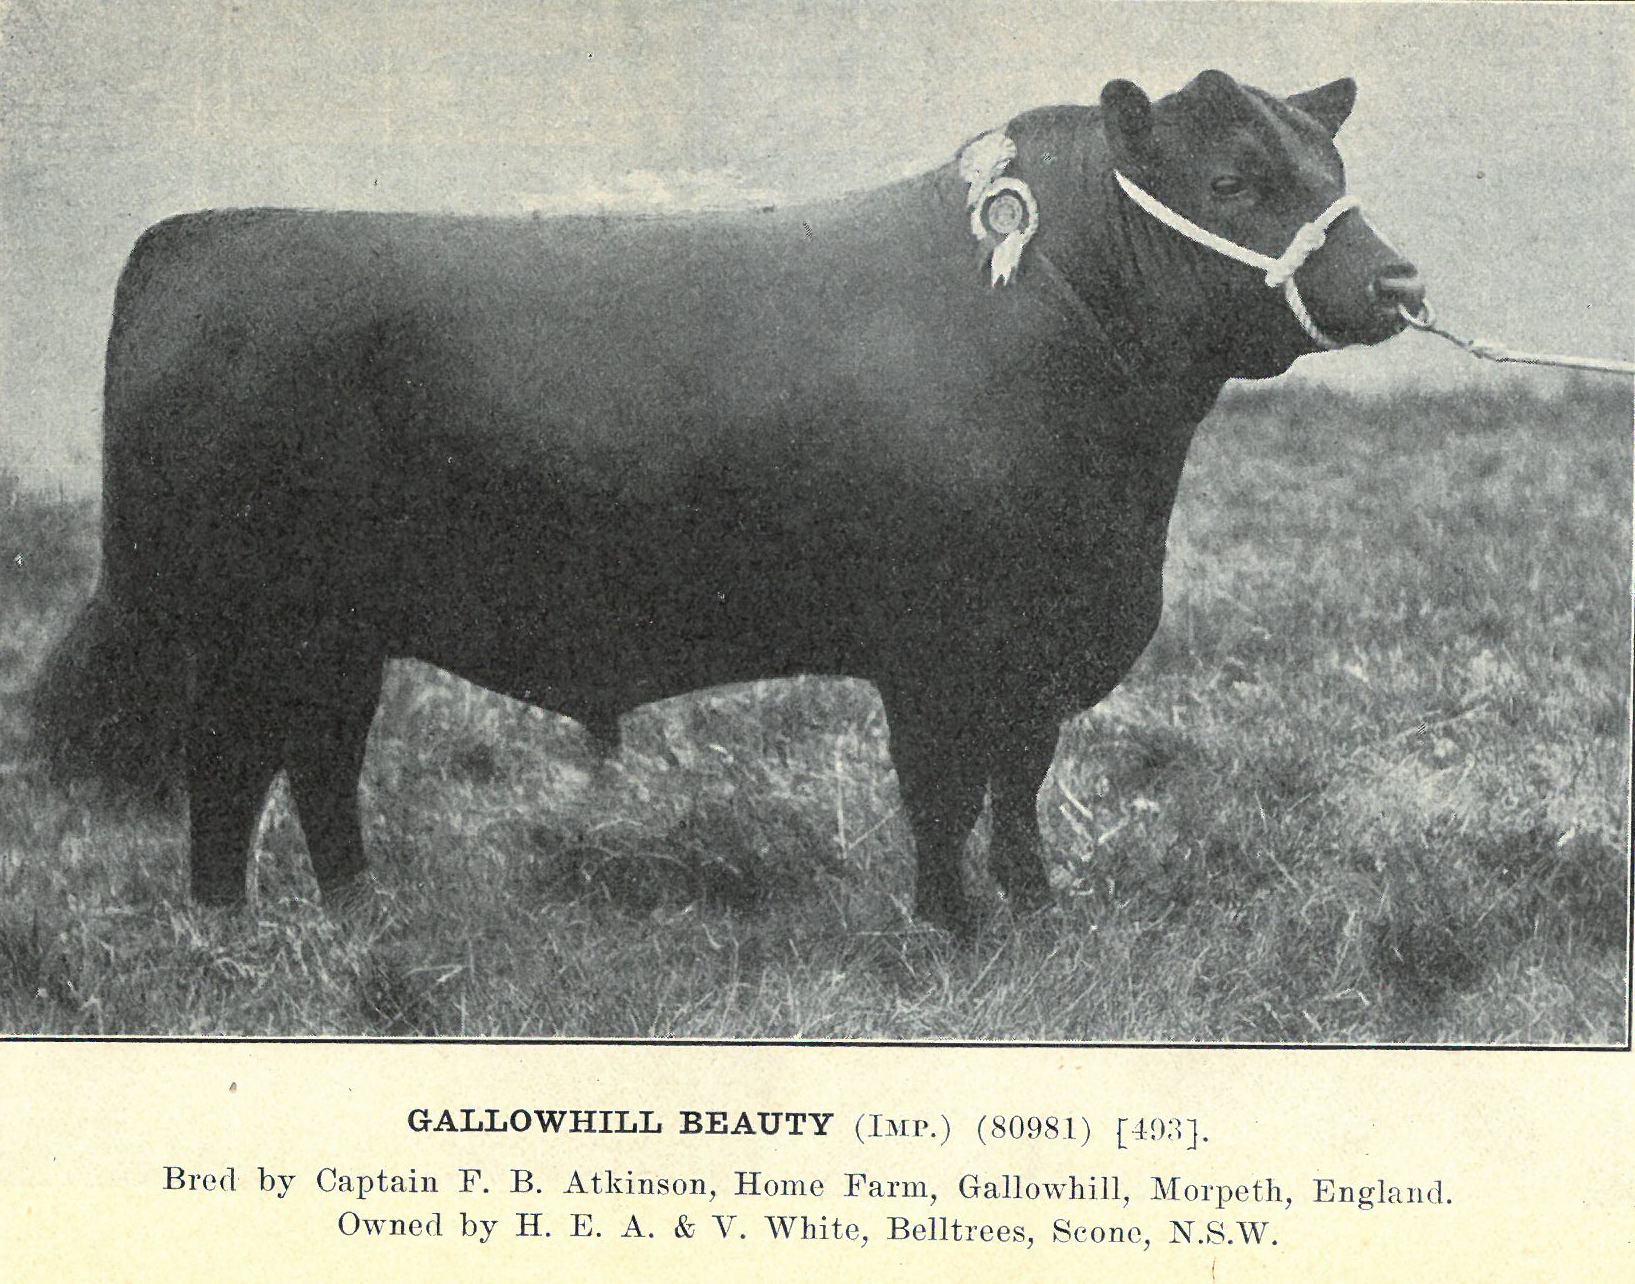 Gallowhill Beauty